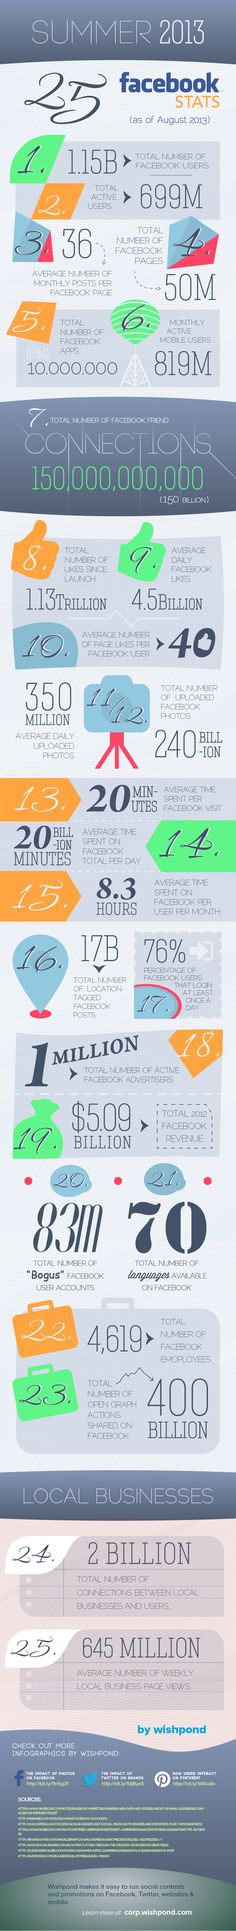 #Infographic: 25 #Facebook #Stats (as of august 2013)